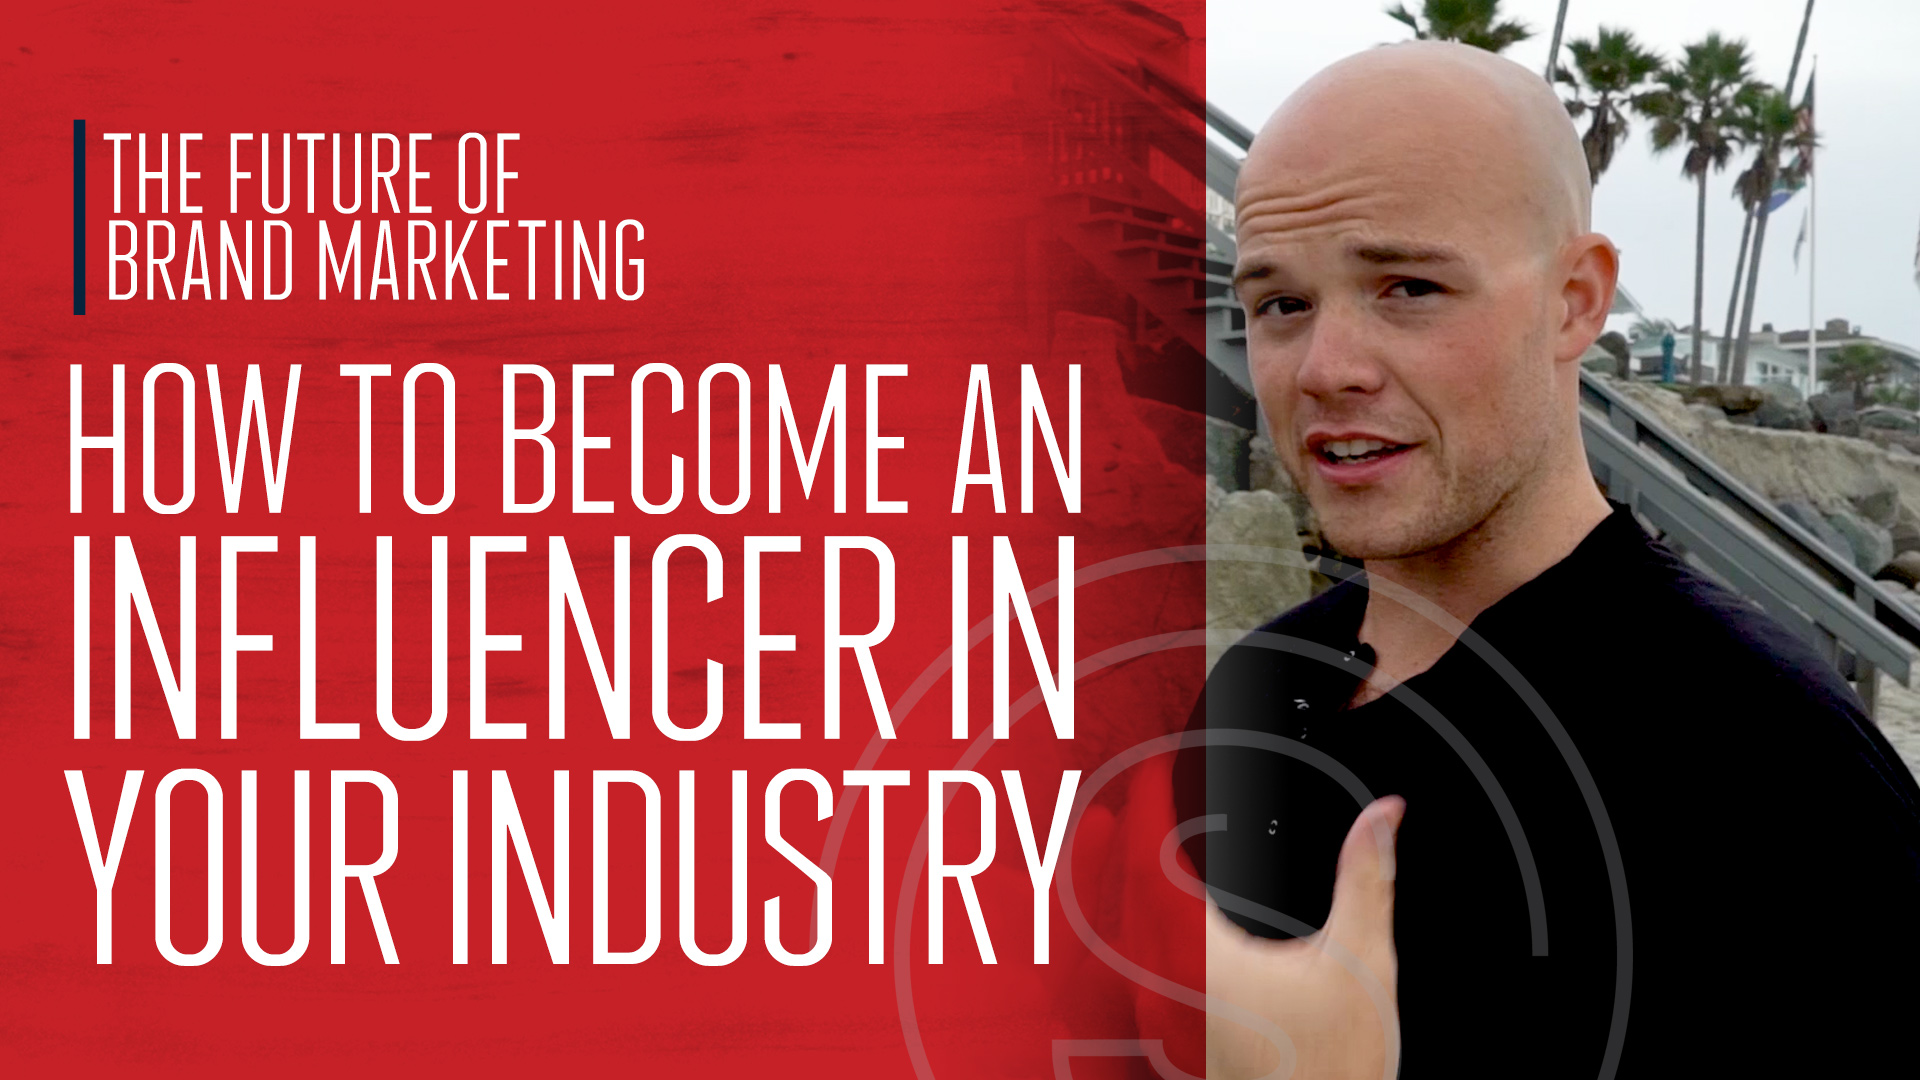 The Future of Brand Marketing -- How To Become an Influencer in Your Industry